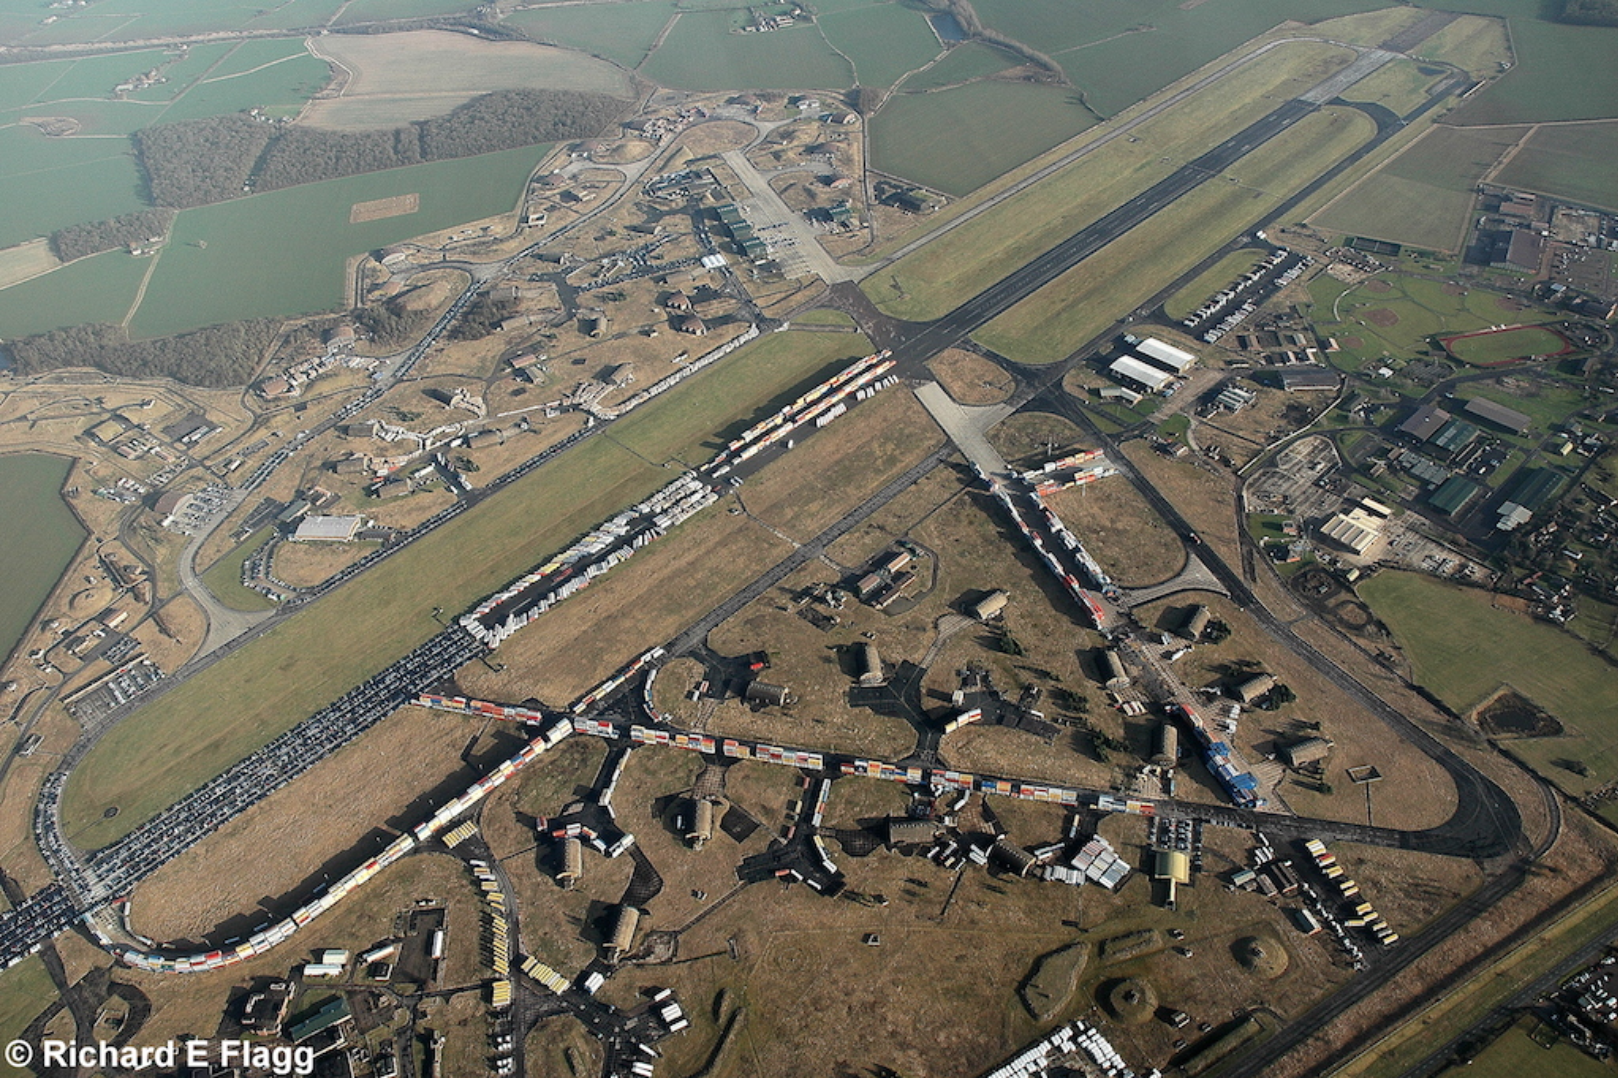 016Aerial View of RAF Alconbury - 5 January 2008.png